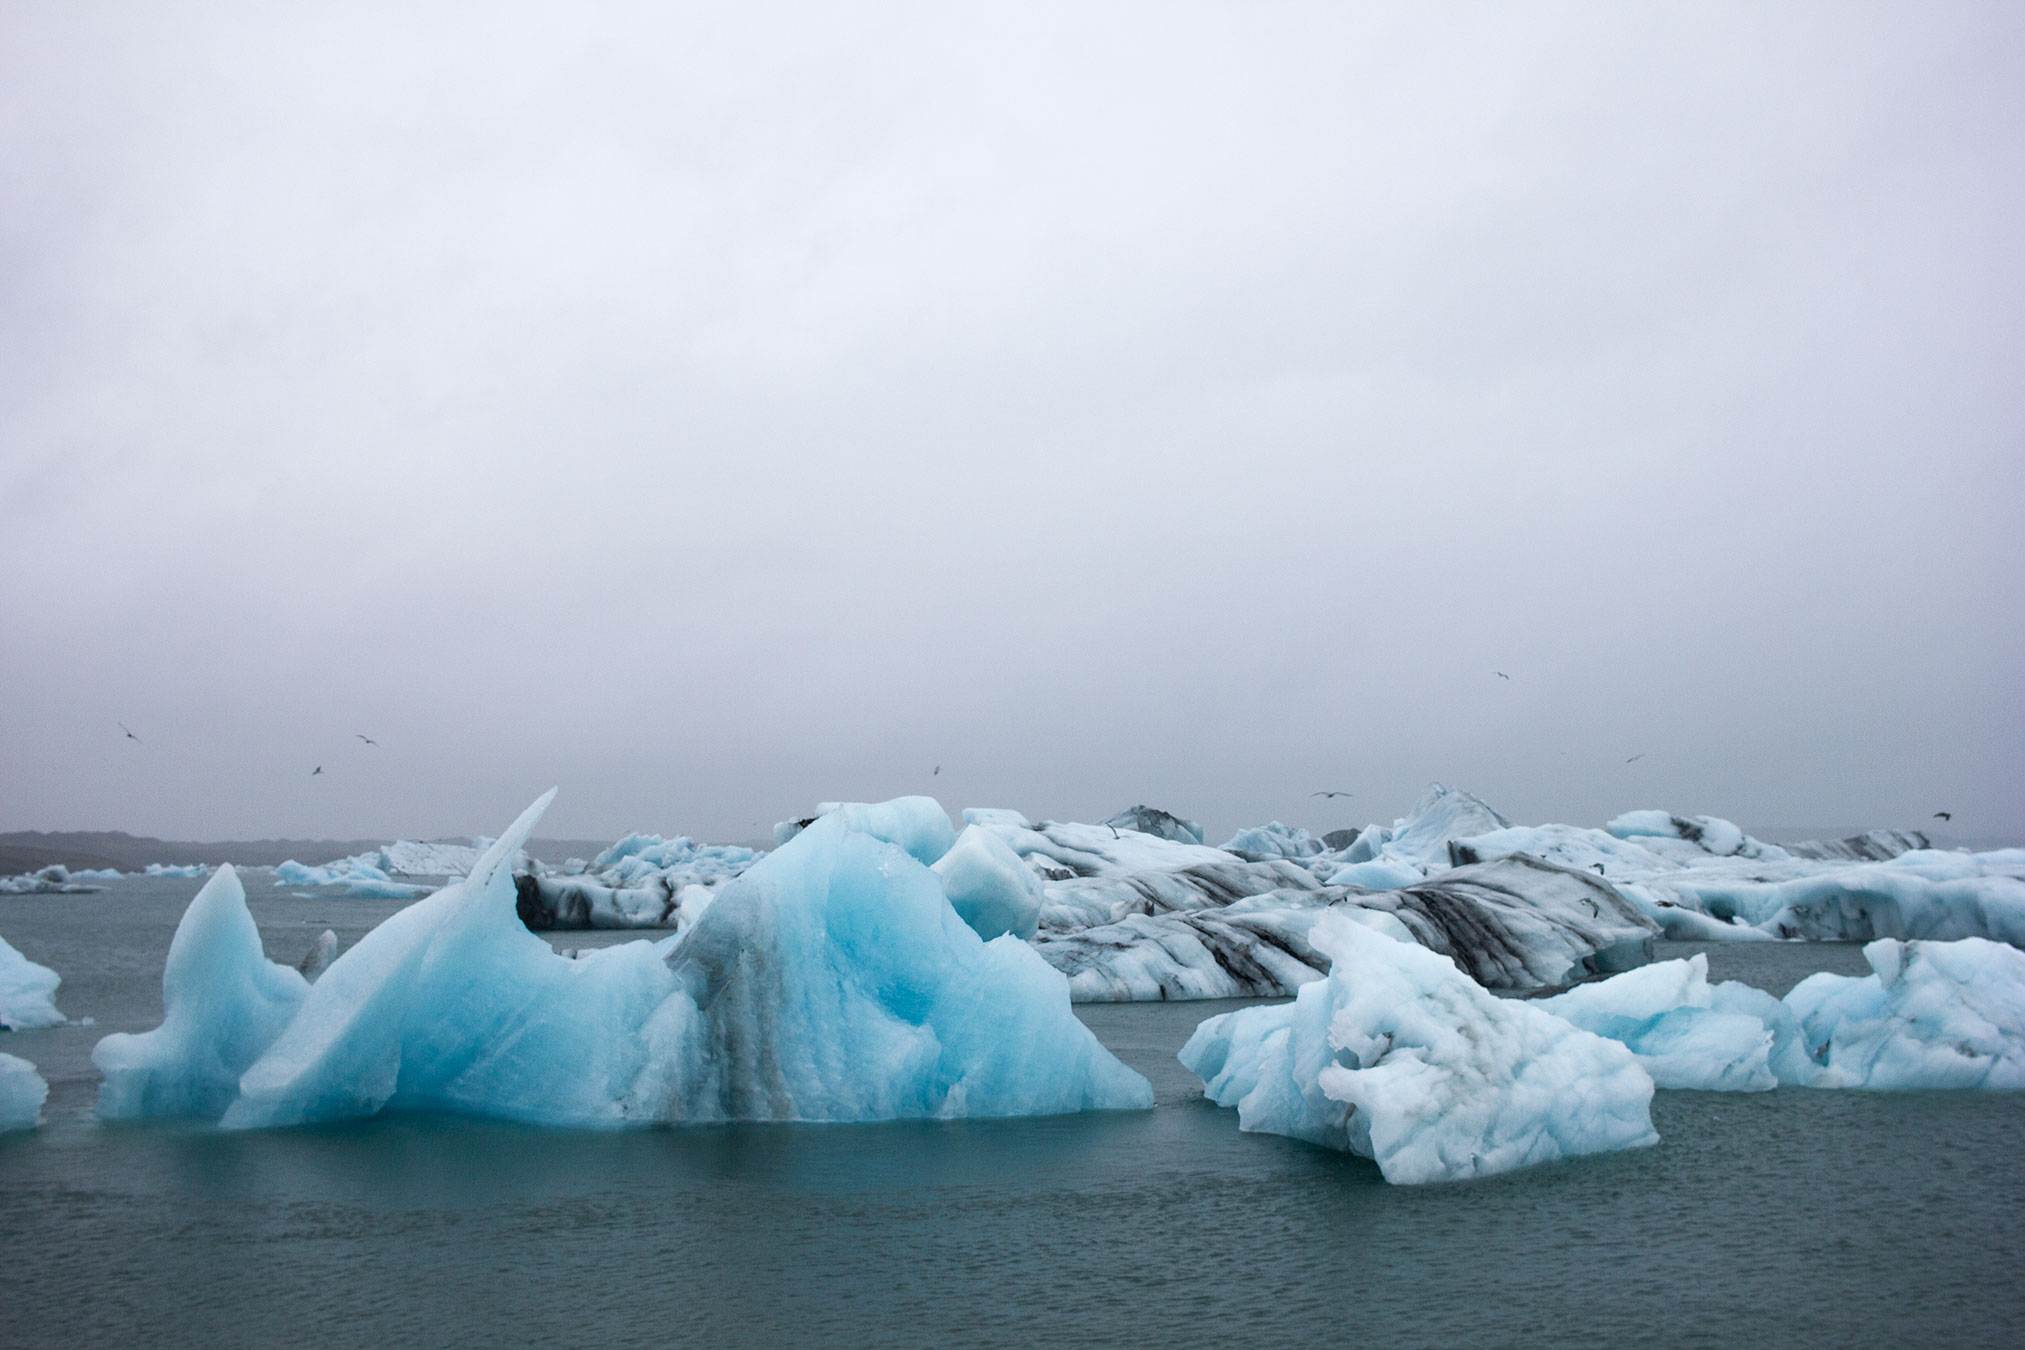 calvin-walker-beautiful-jokulsarlon-iceland-glaciers-3.jpg